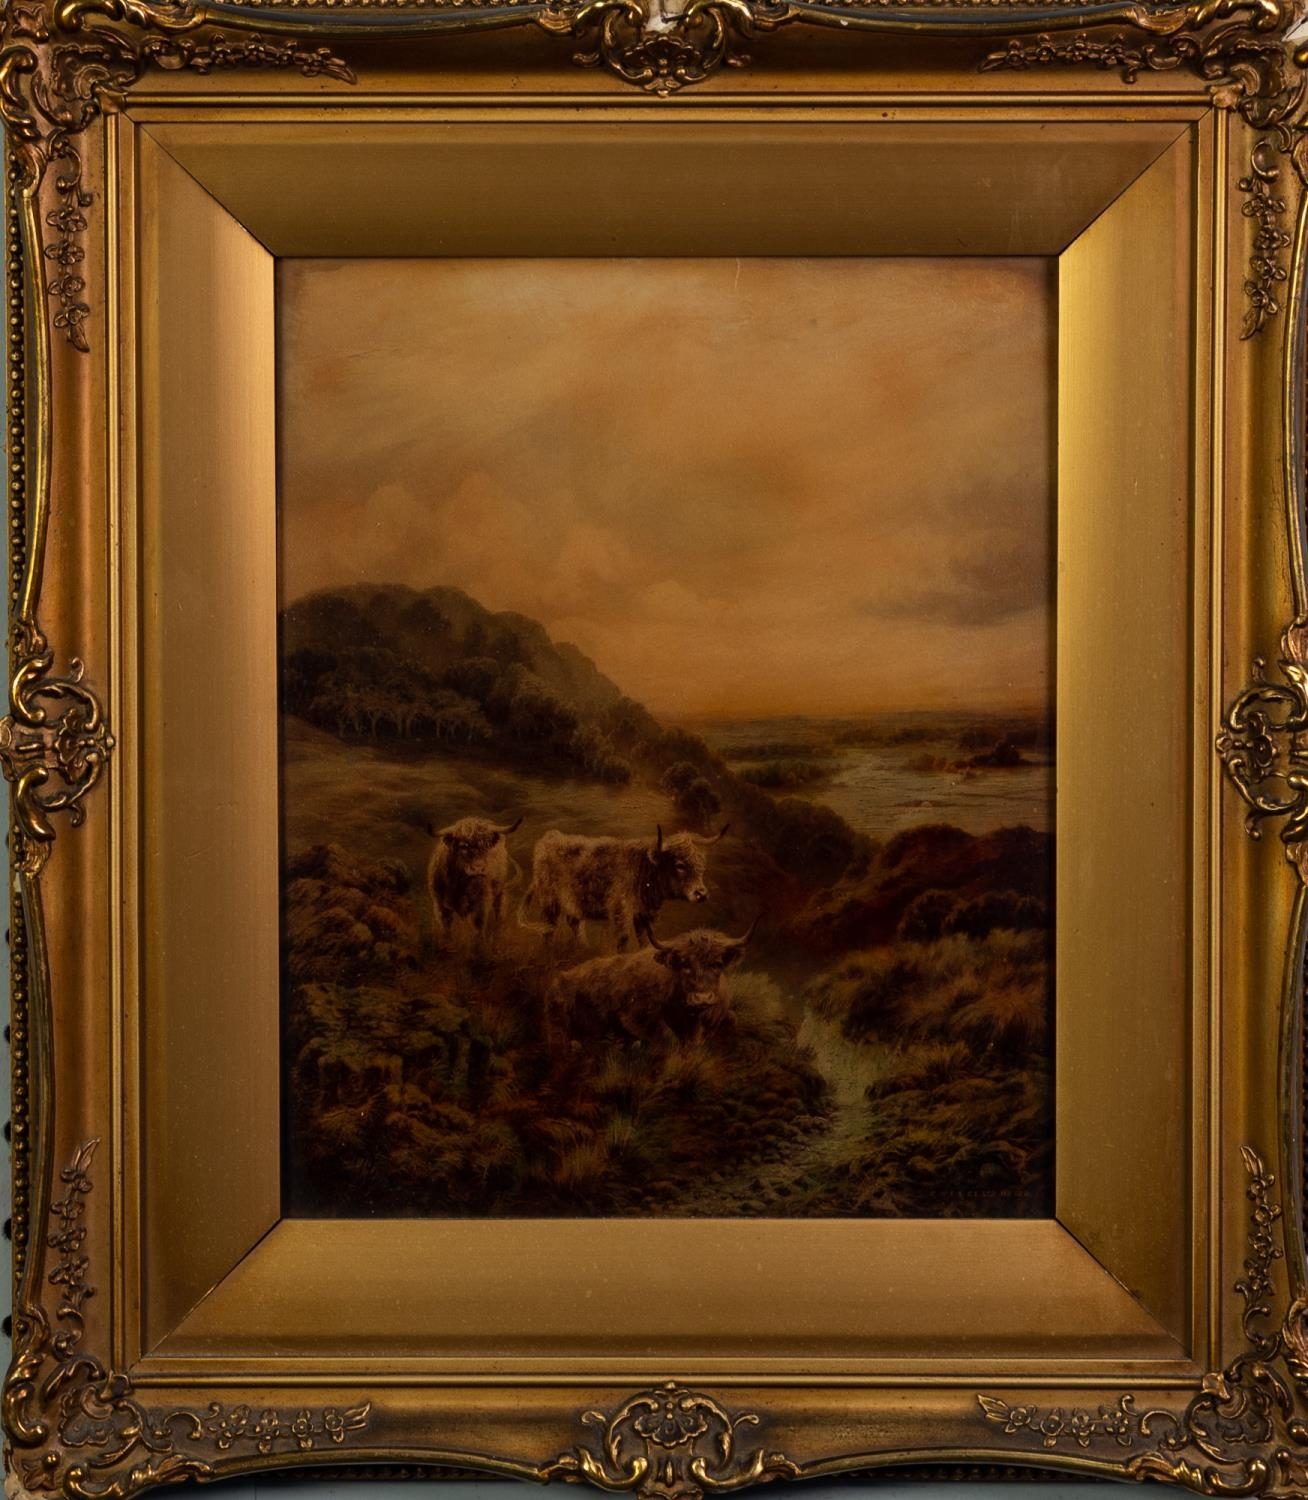 C.W.F. & Co Ltd, CRYSTOLEUM, No. 122 Highland cattle in a landscape 9 ¾? x 8? (24.7cm x 20.3cm) - Image 2 of 2